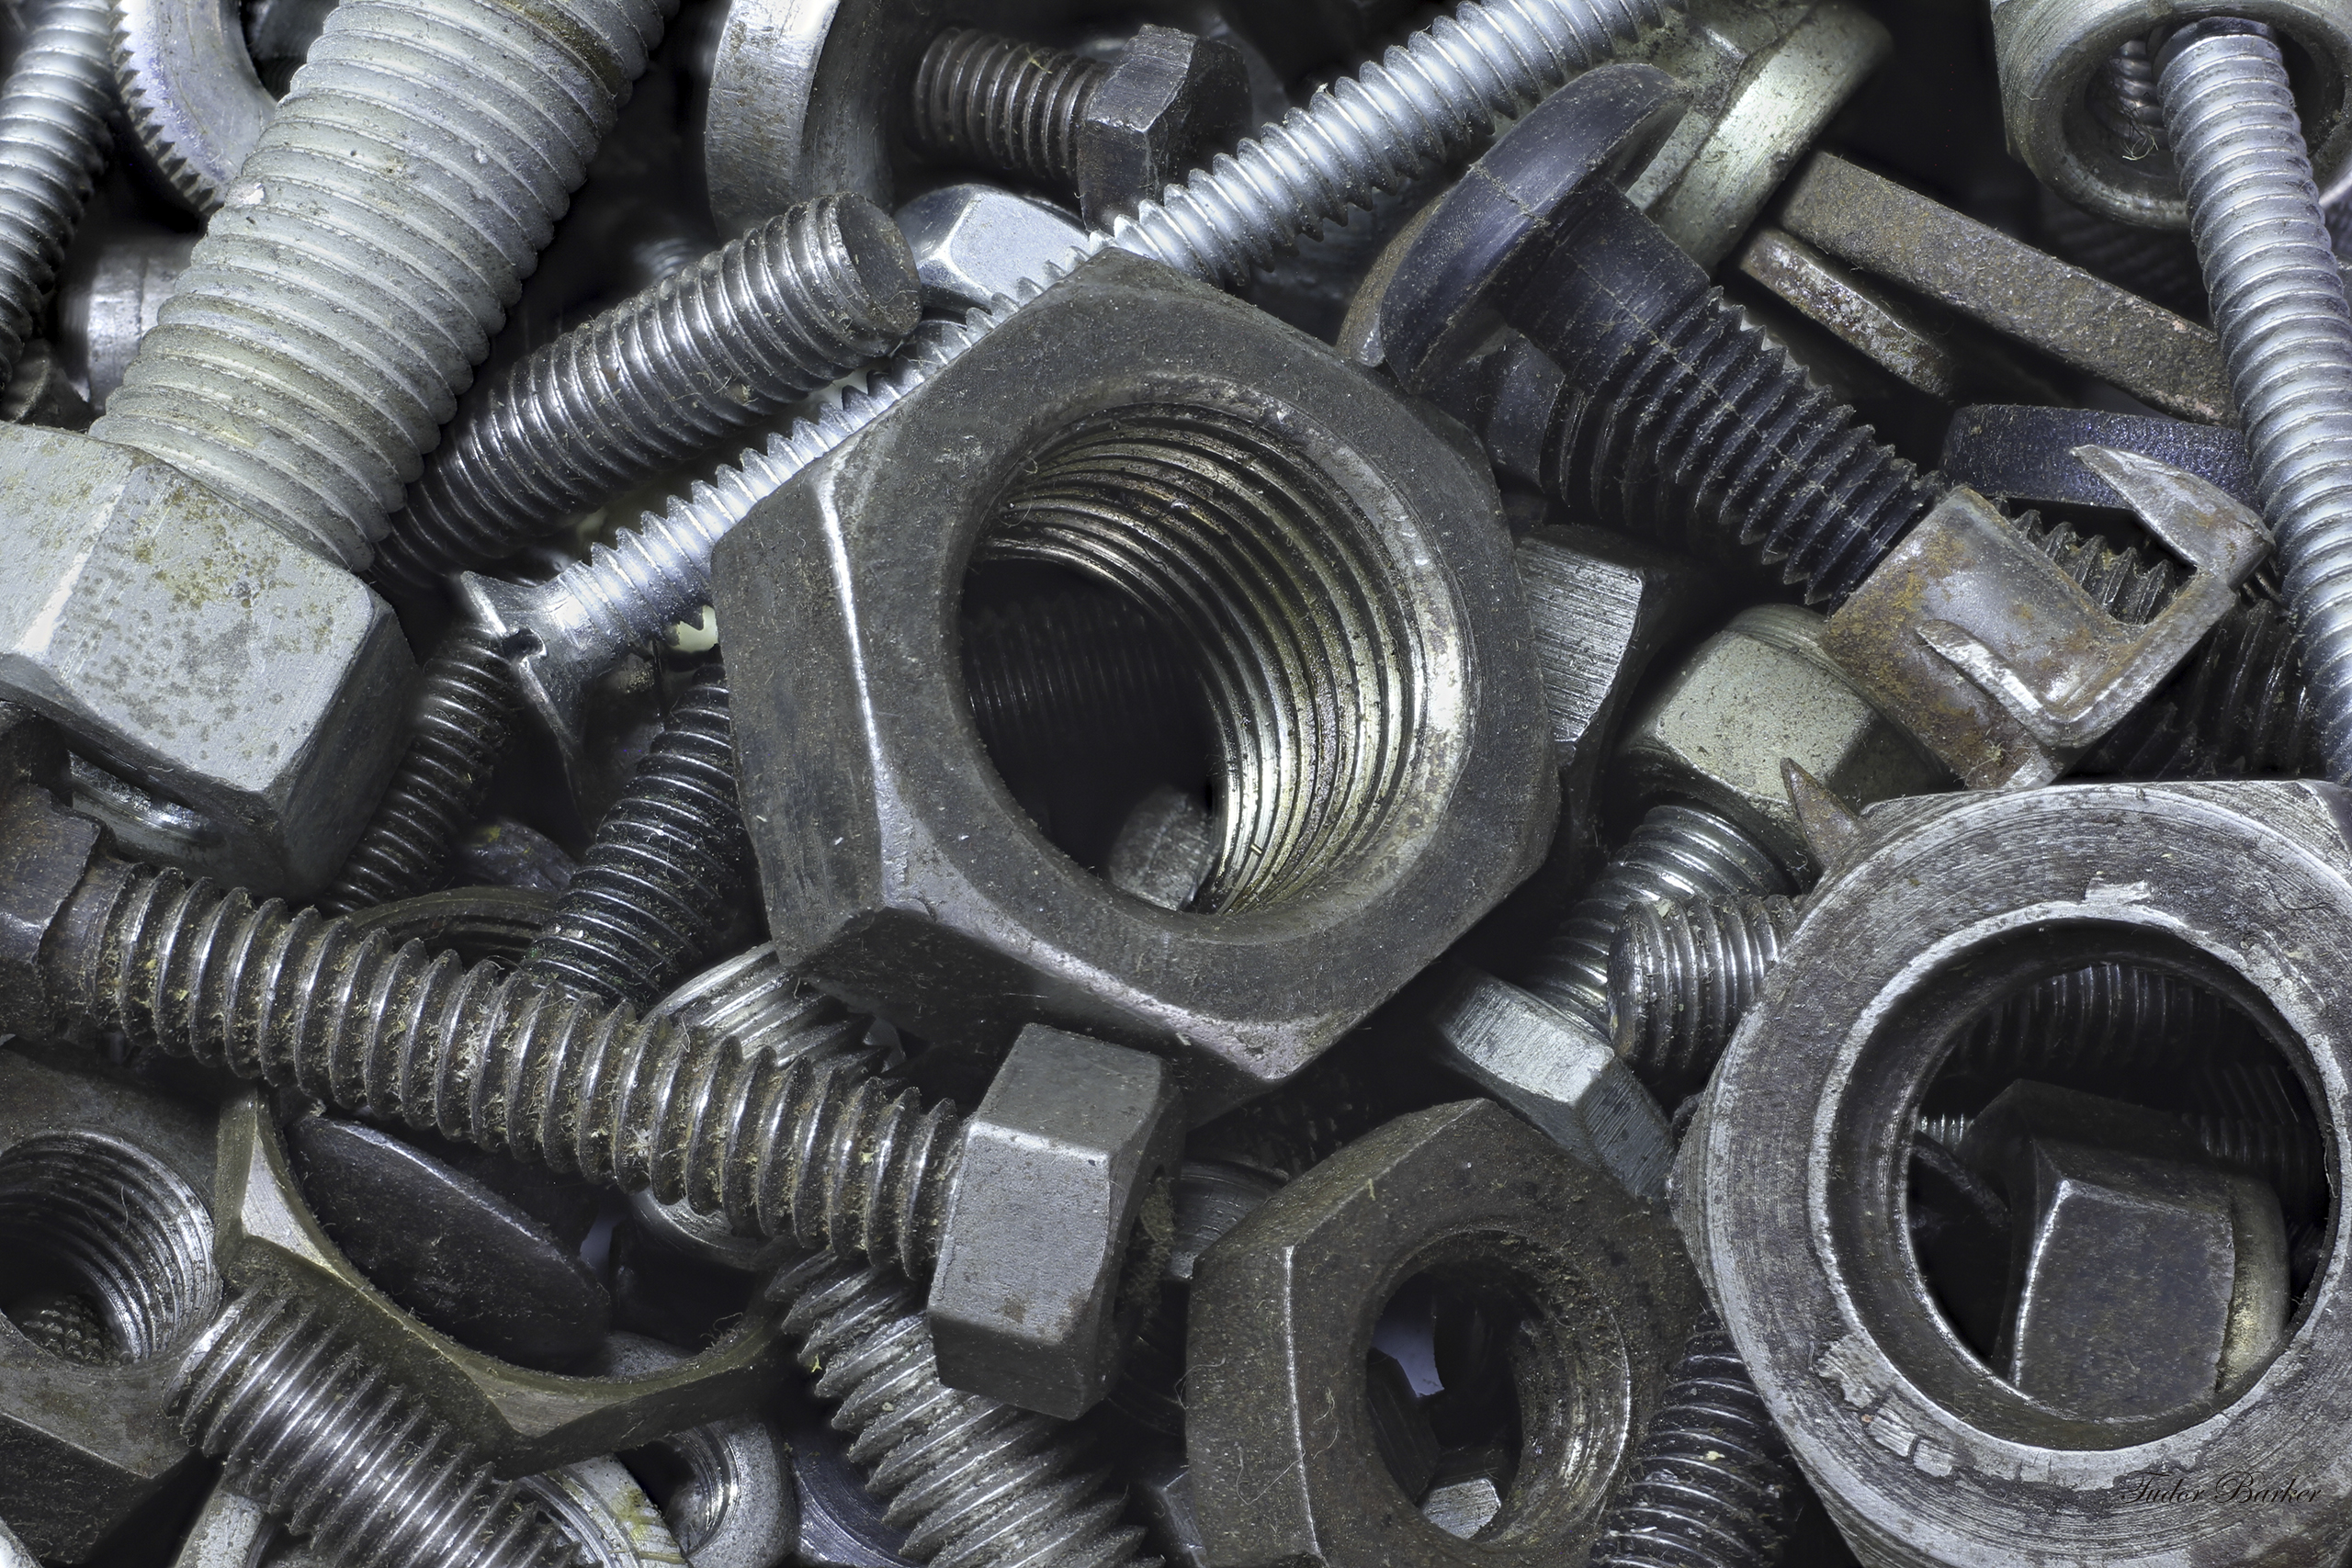 Old Nuts and Bolts | Mainly Imperial Sizes with a few UNF ...